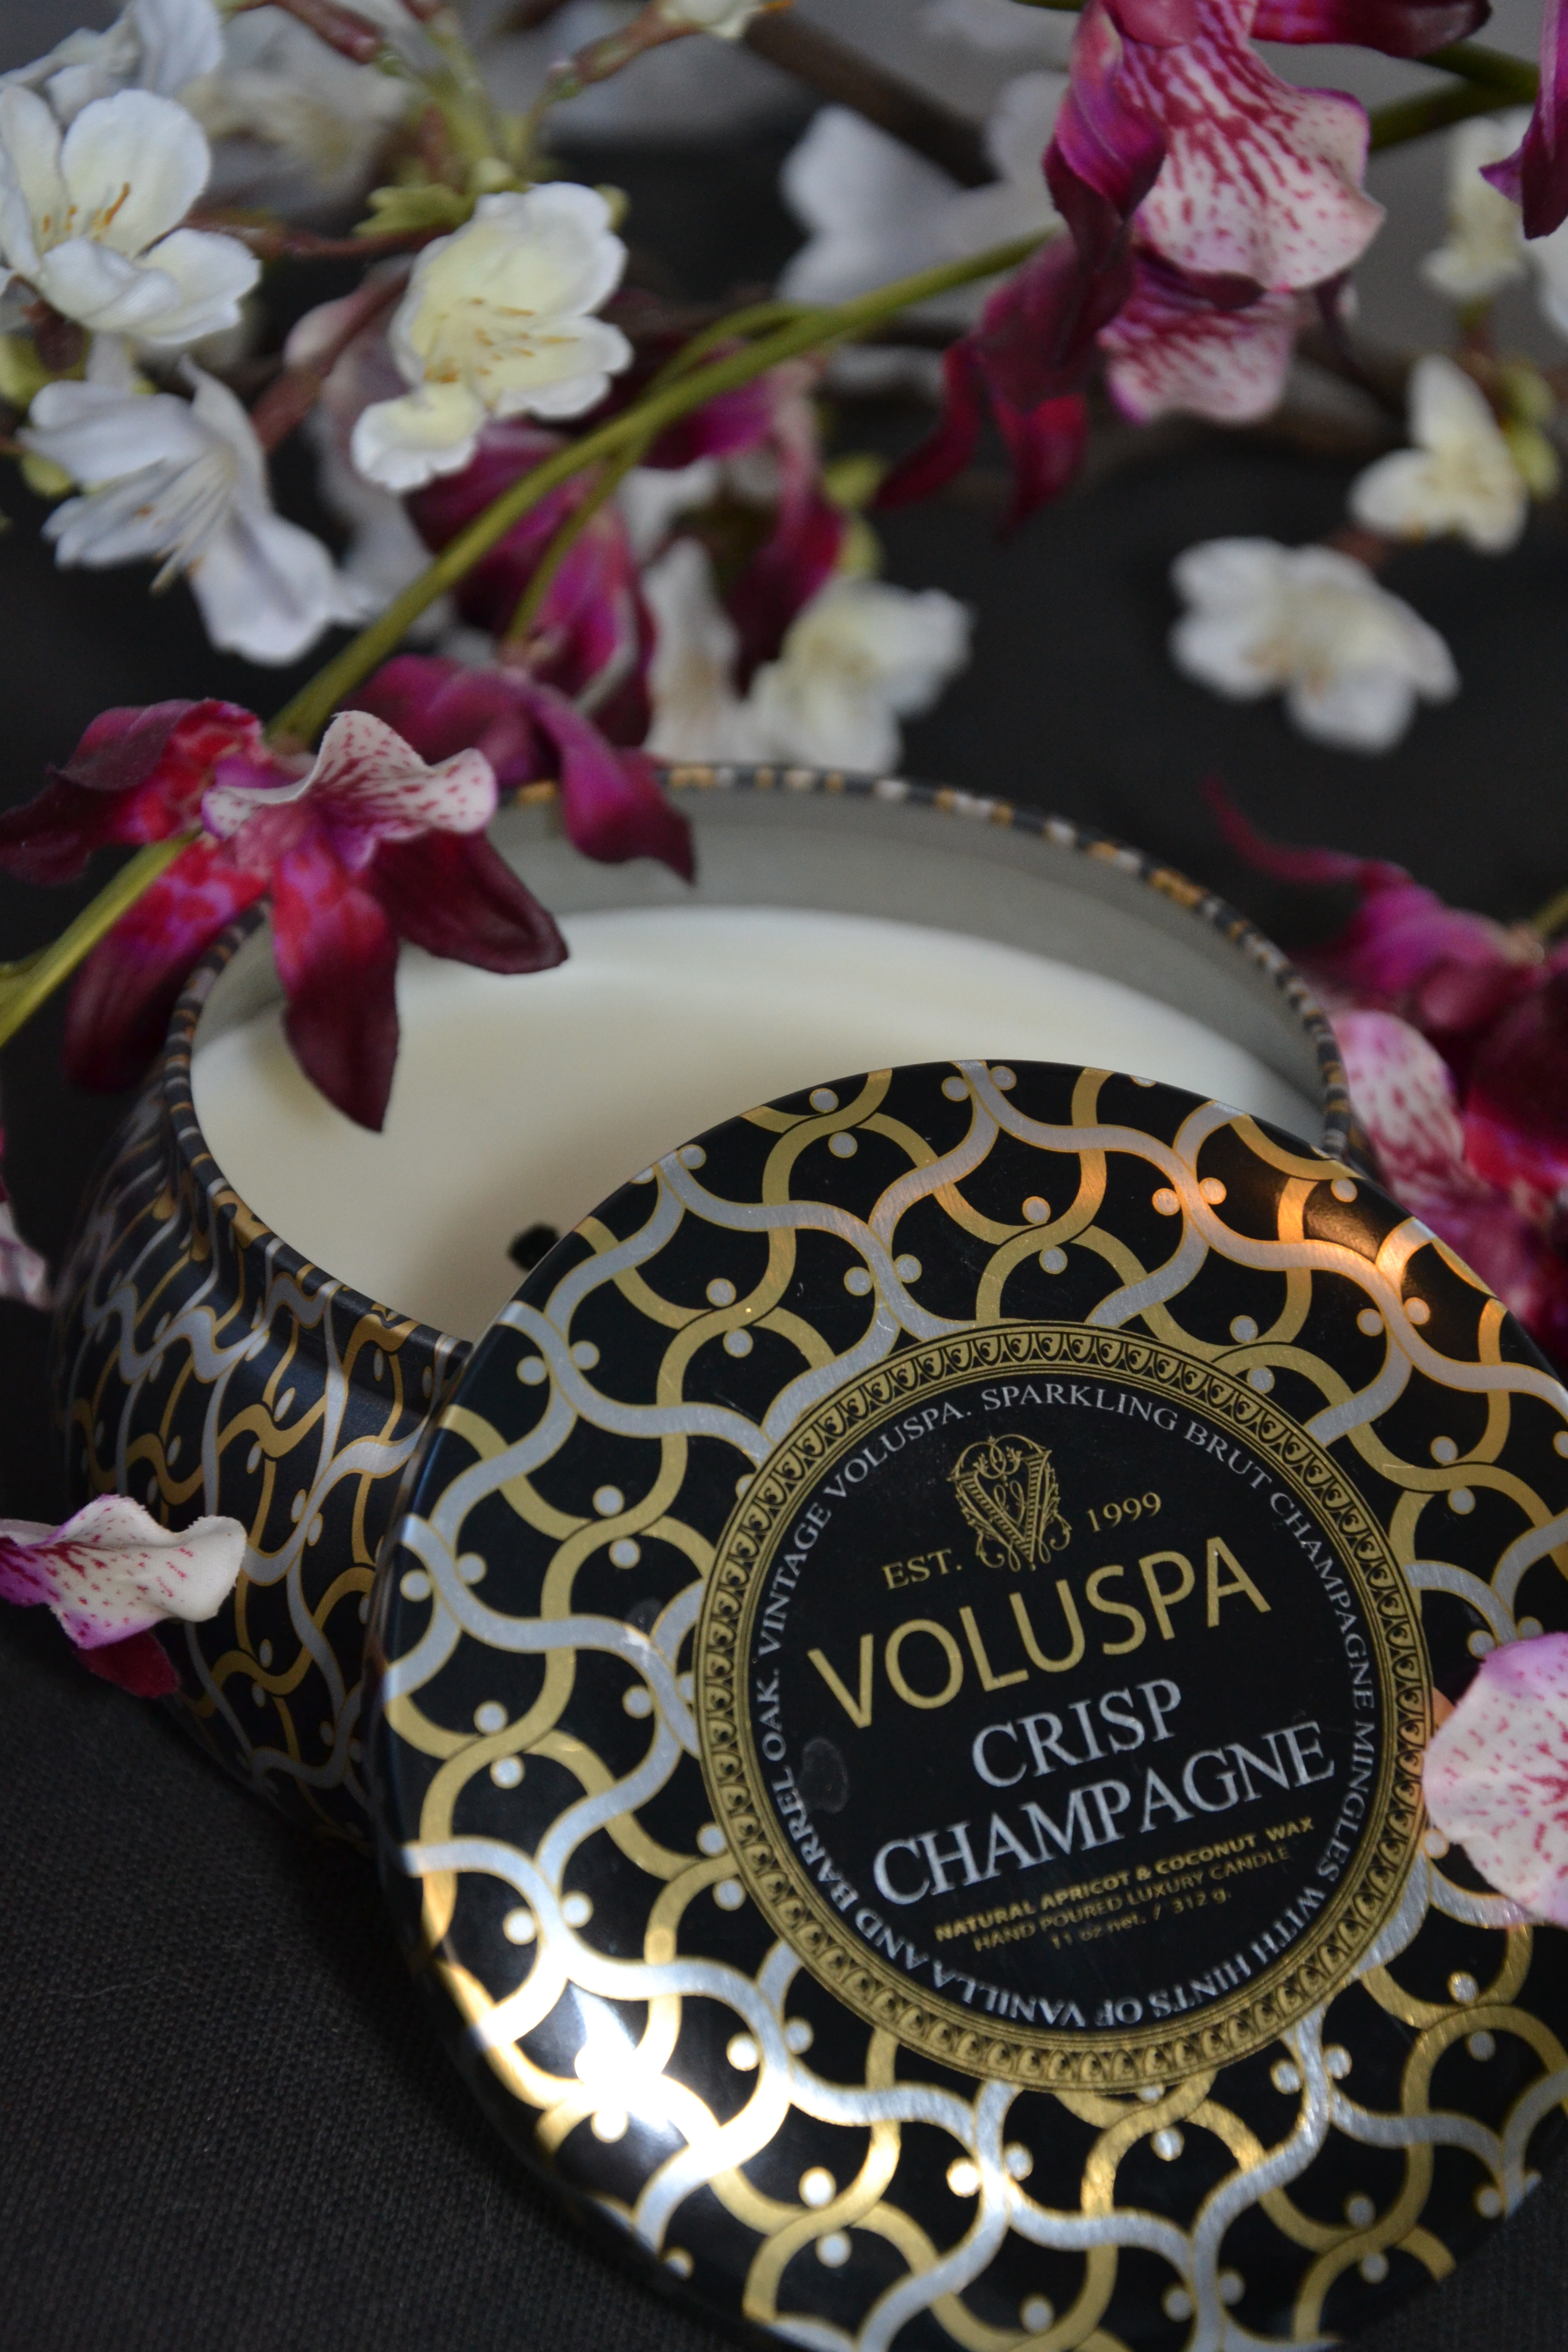 Voluspa Champagne candle, the scent of spring